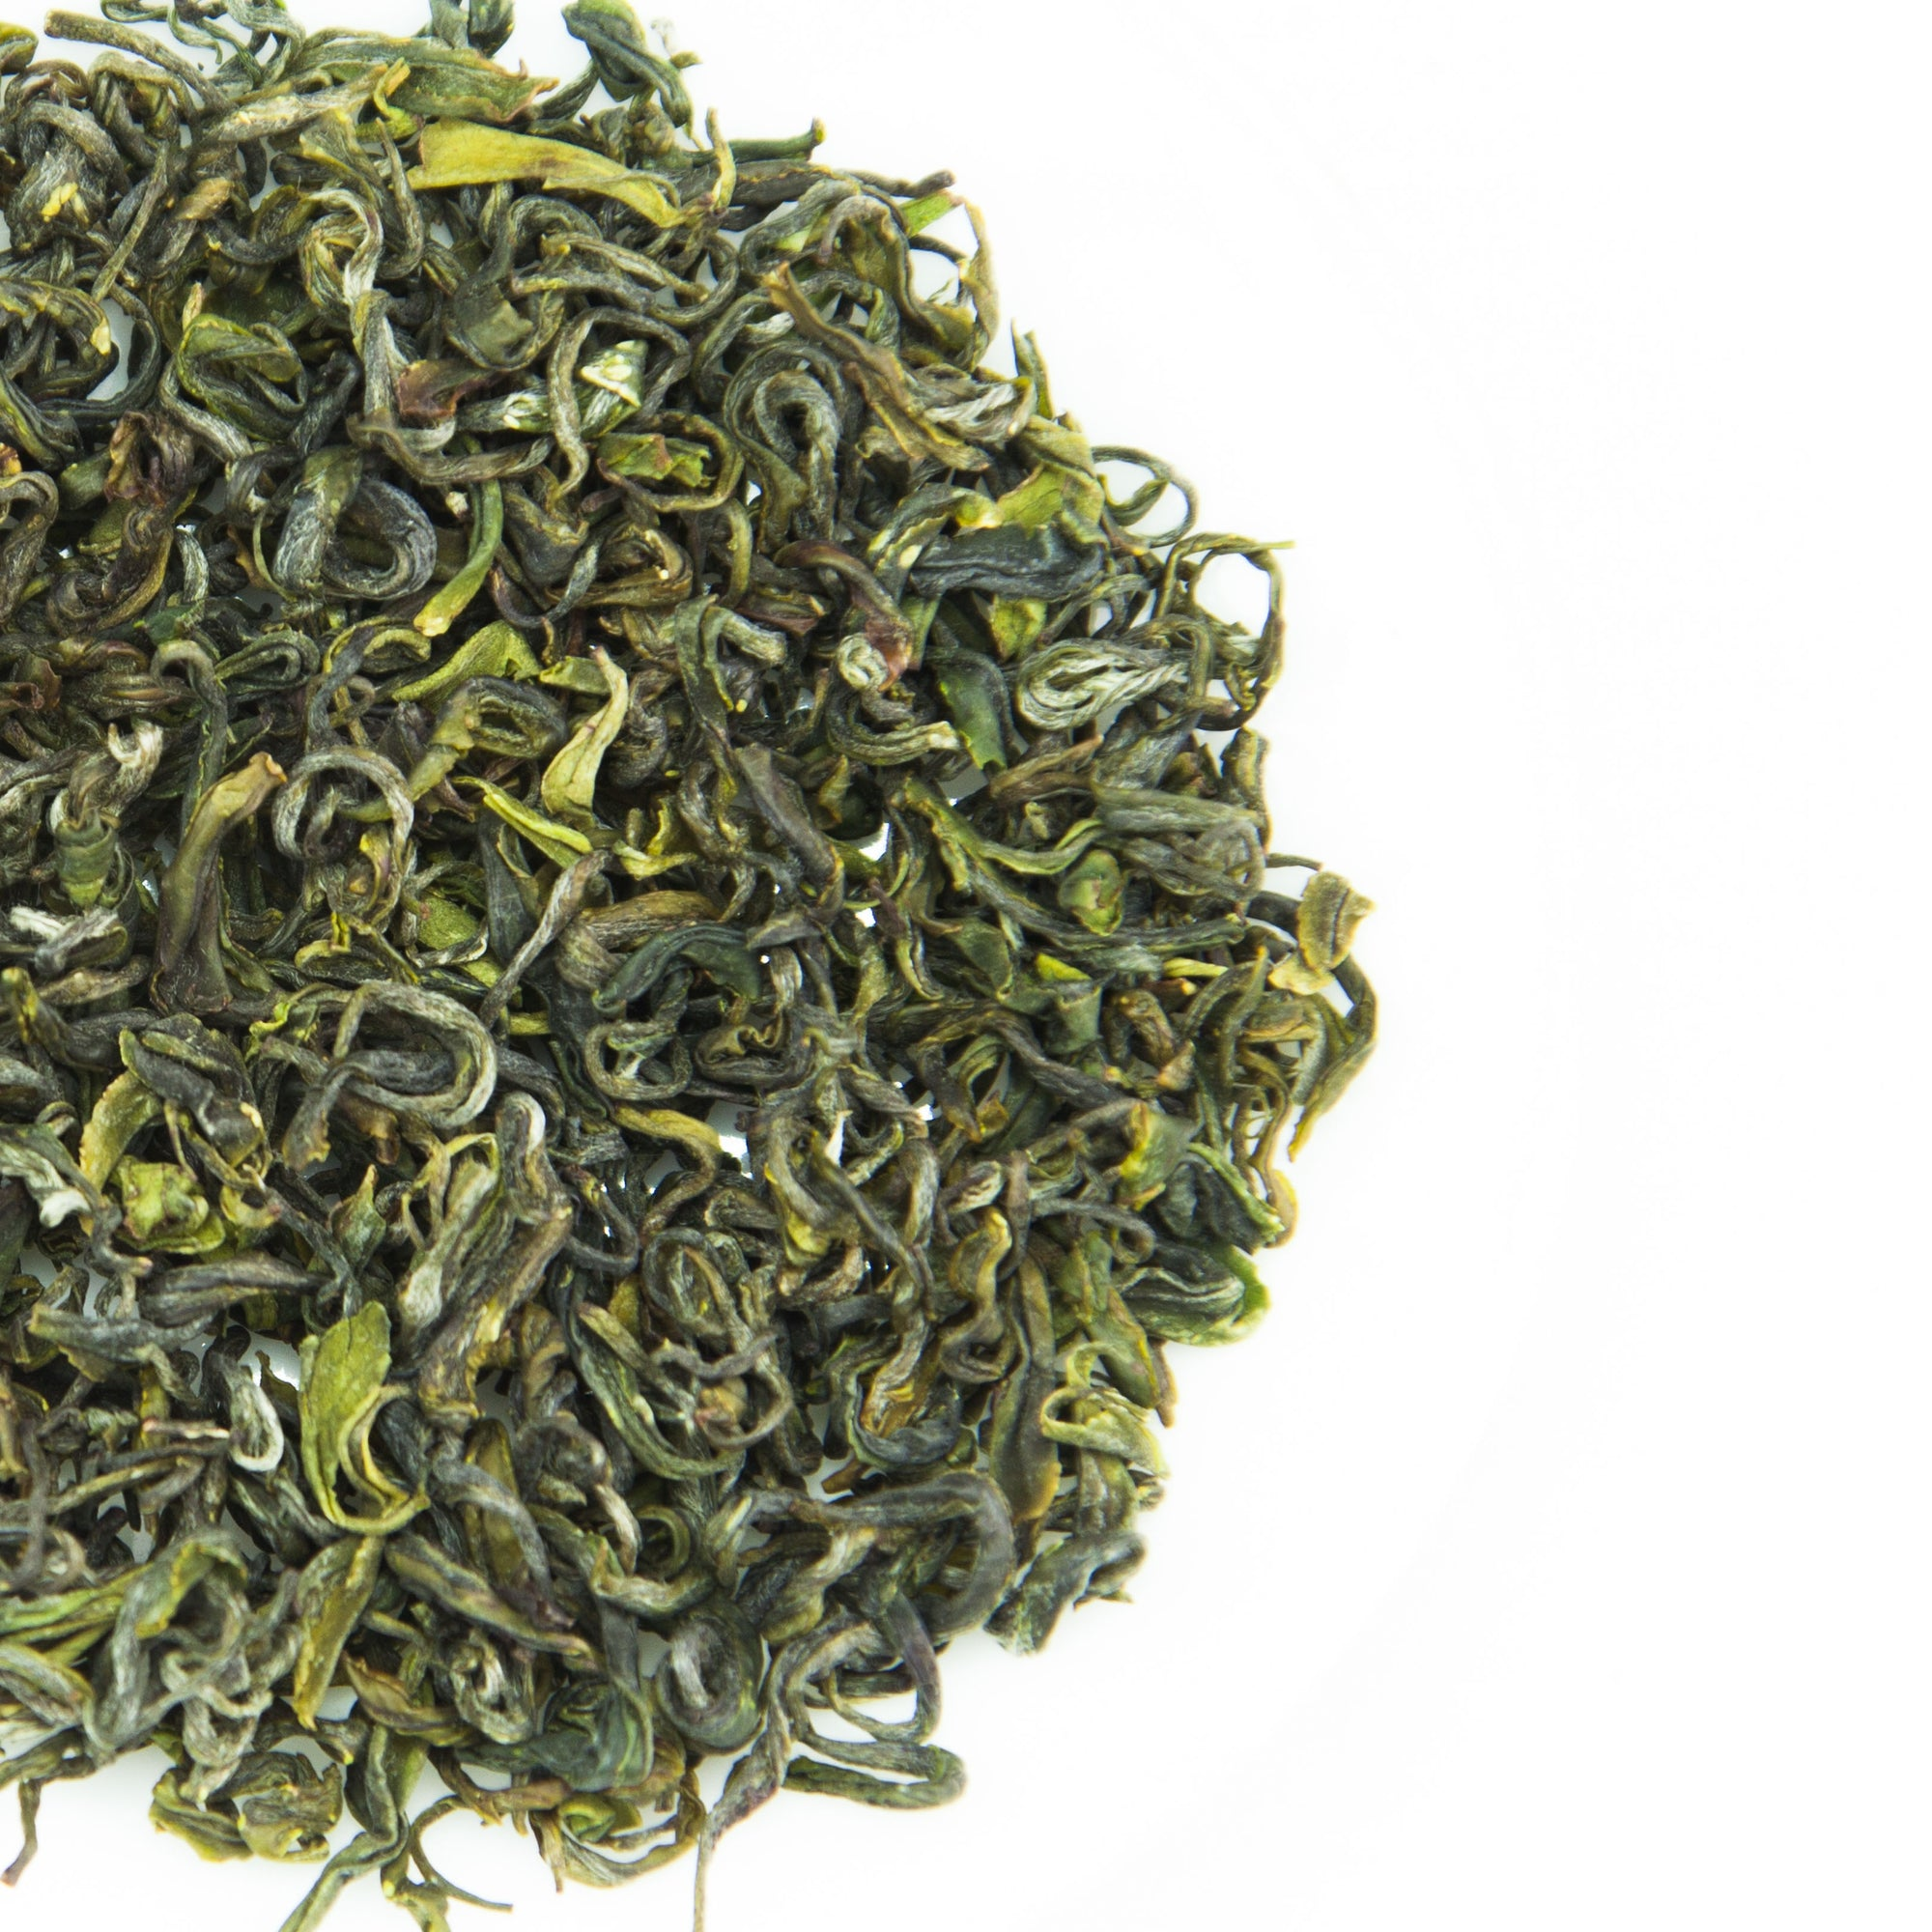 Mogan Shan Green Tea